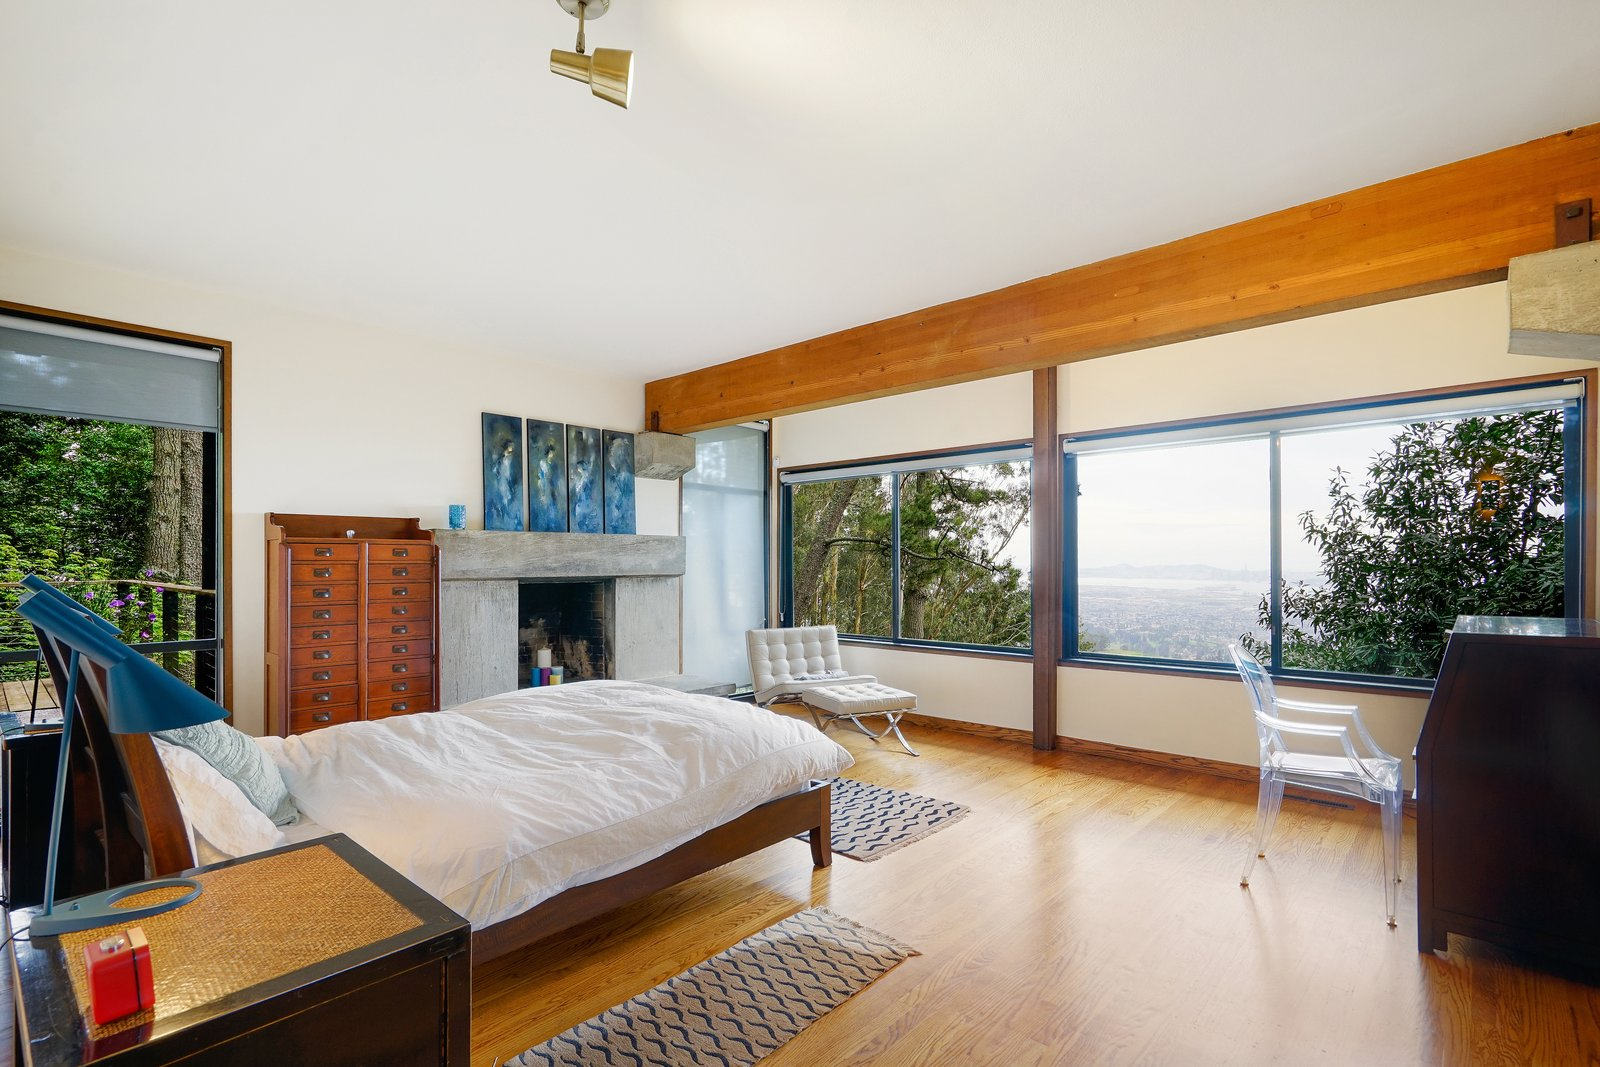 The master suite looks out onto the waters of the Bay.